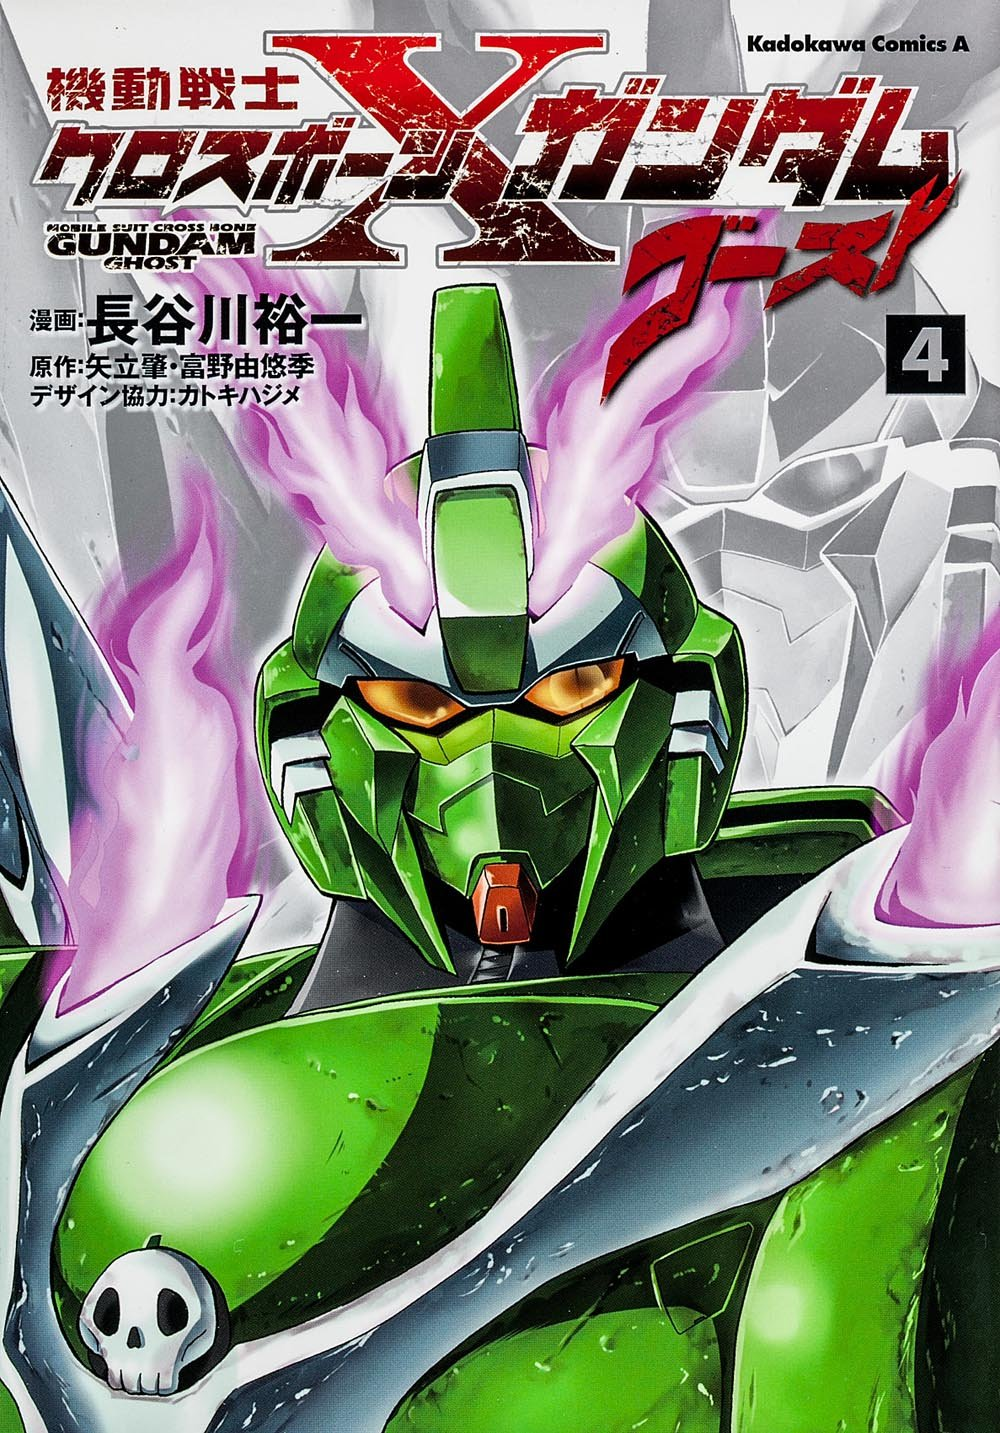 Download Mobile Suit Crossbone Gundam Ghost Vol.4 (Kadokawa Comics Ace) Manga PDF